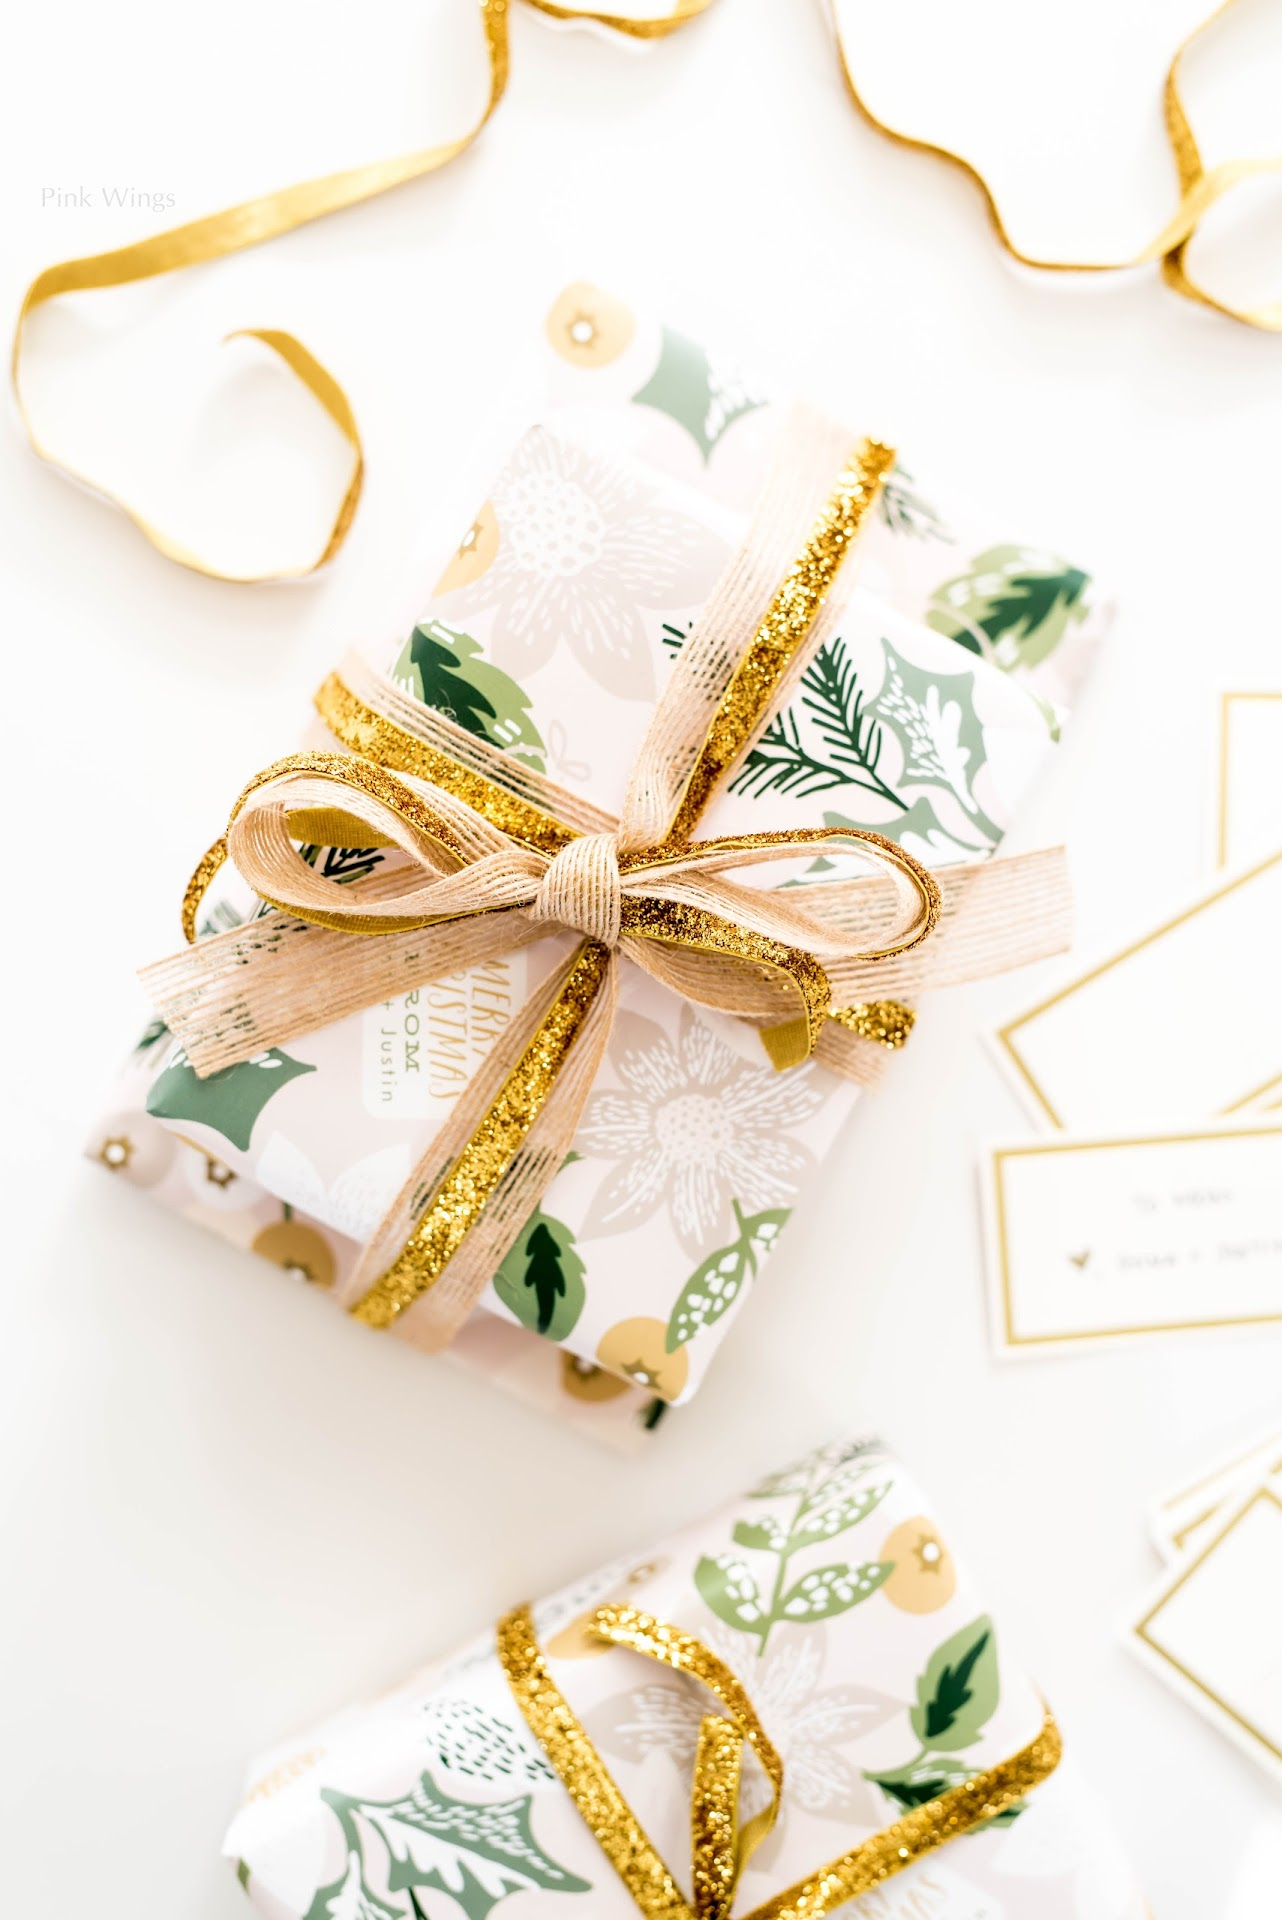 personalized gifts, gifts for people who are hard to shop for, gifts for anyone, custom gifts, personalized stationery, pretty gift wrapping, gold gift wrapping, gold ribbon, jute burlap ribbon, classy holiday wrapping paper, gold gift cards tags, holiday wrapping ideas, christmas, diy blog, craft blog, mormon lds blogger